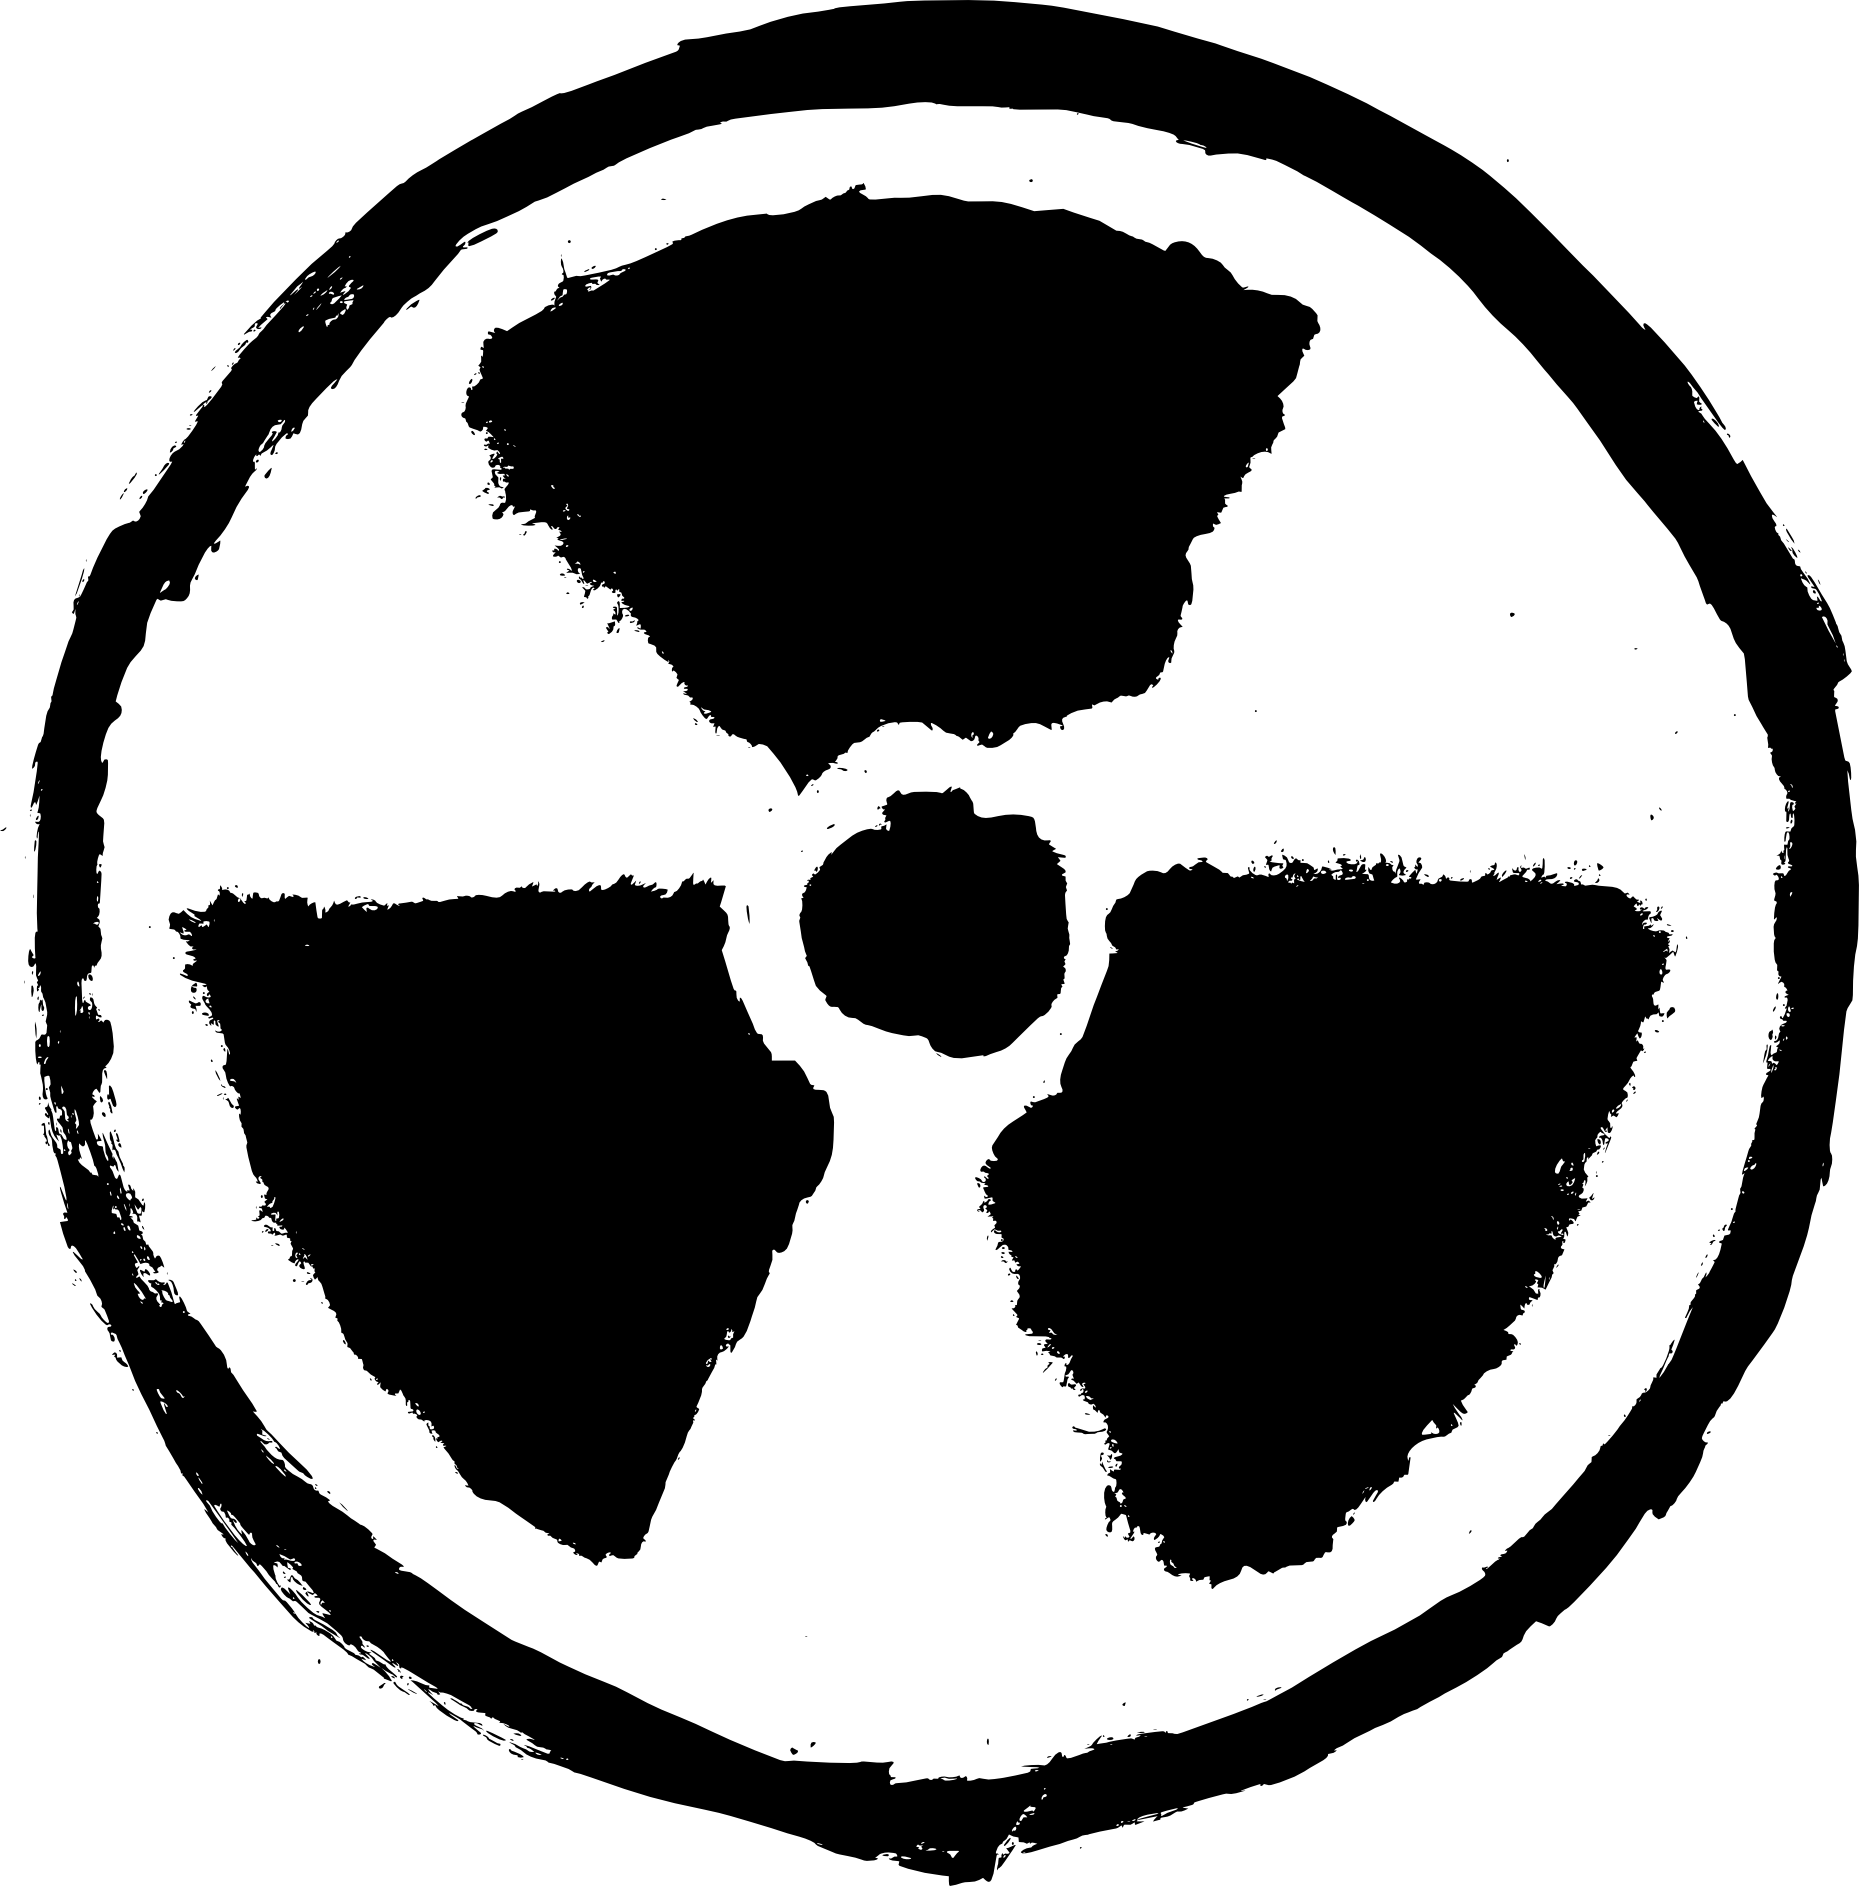 freeuse stock transparent symbols radioactive #106754532